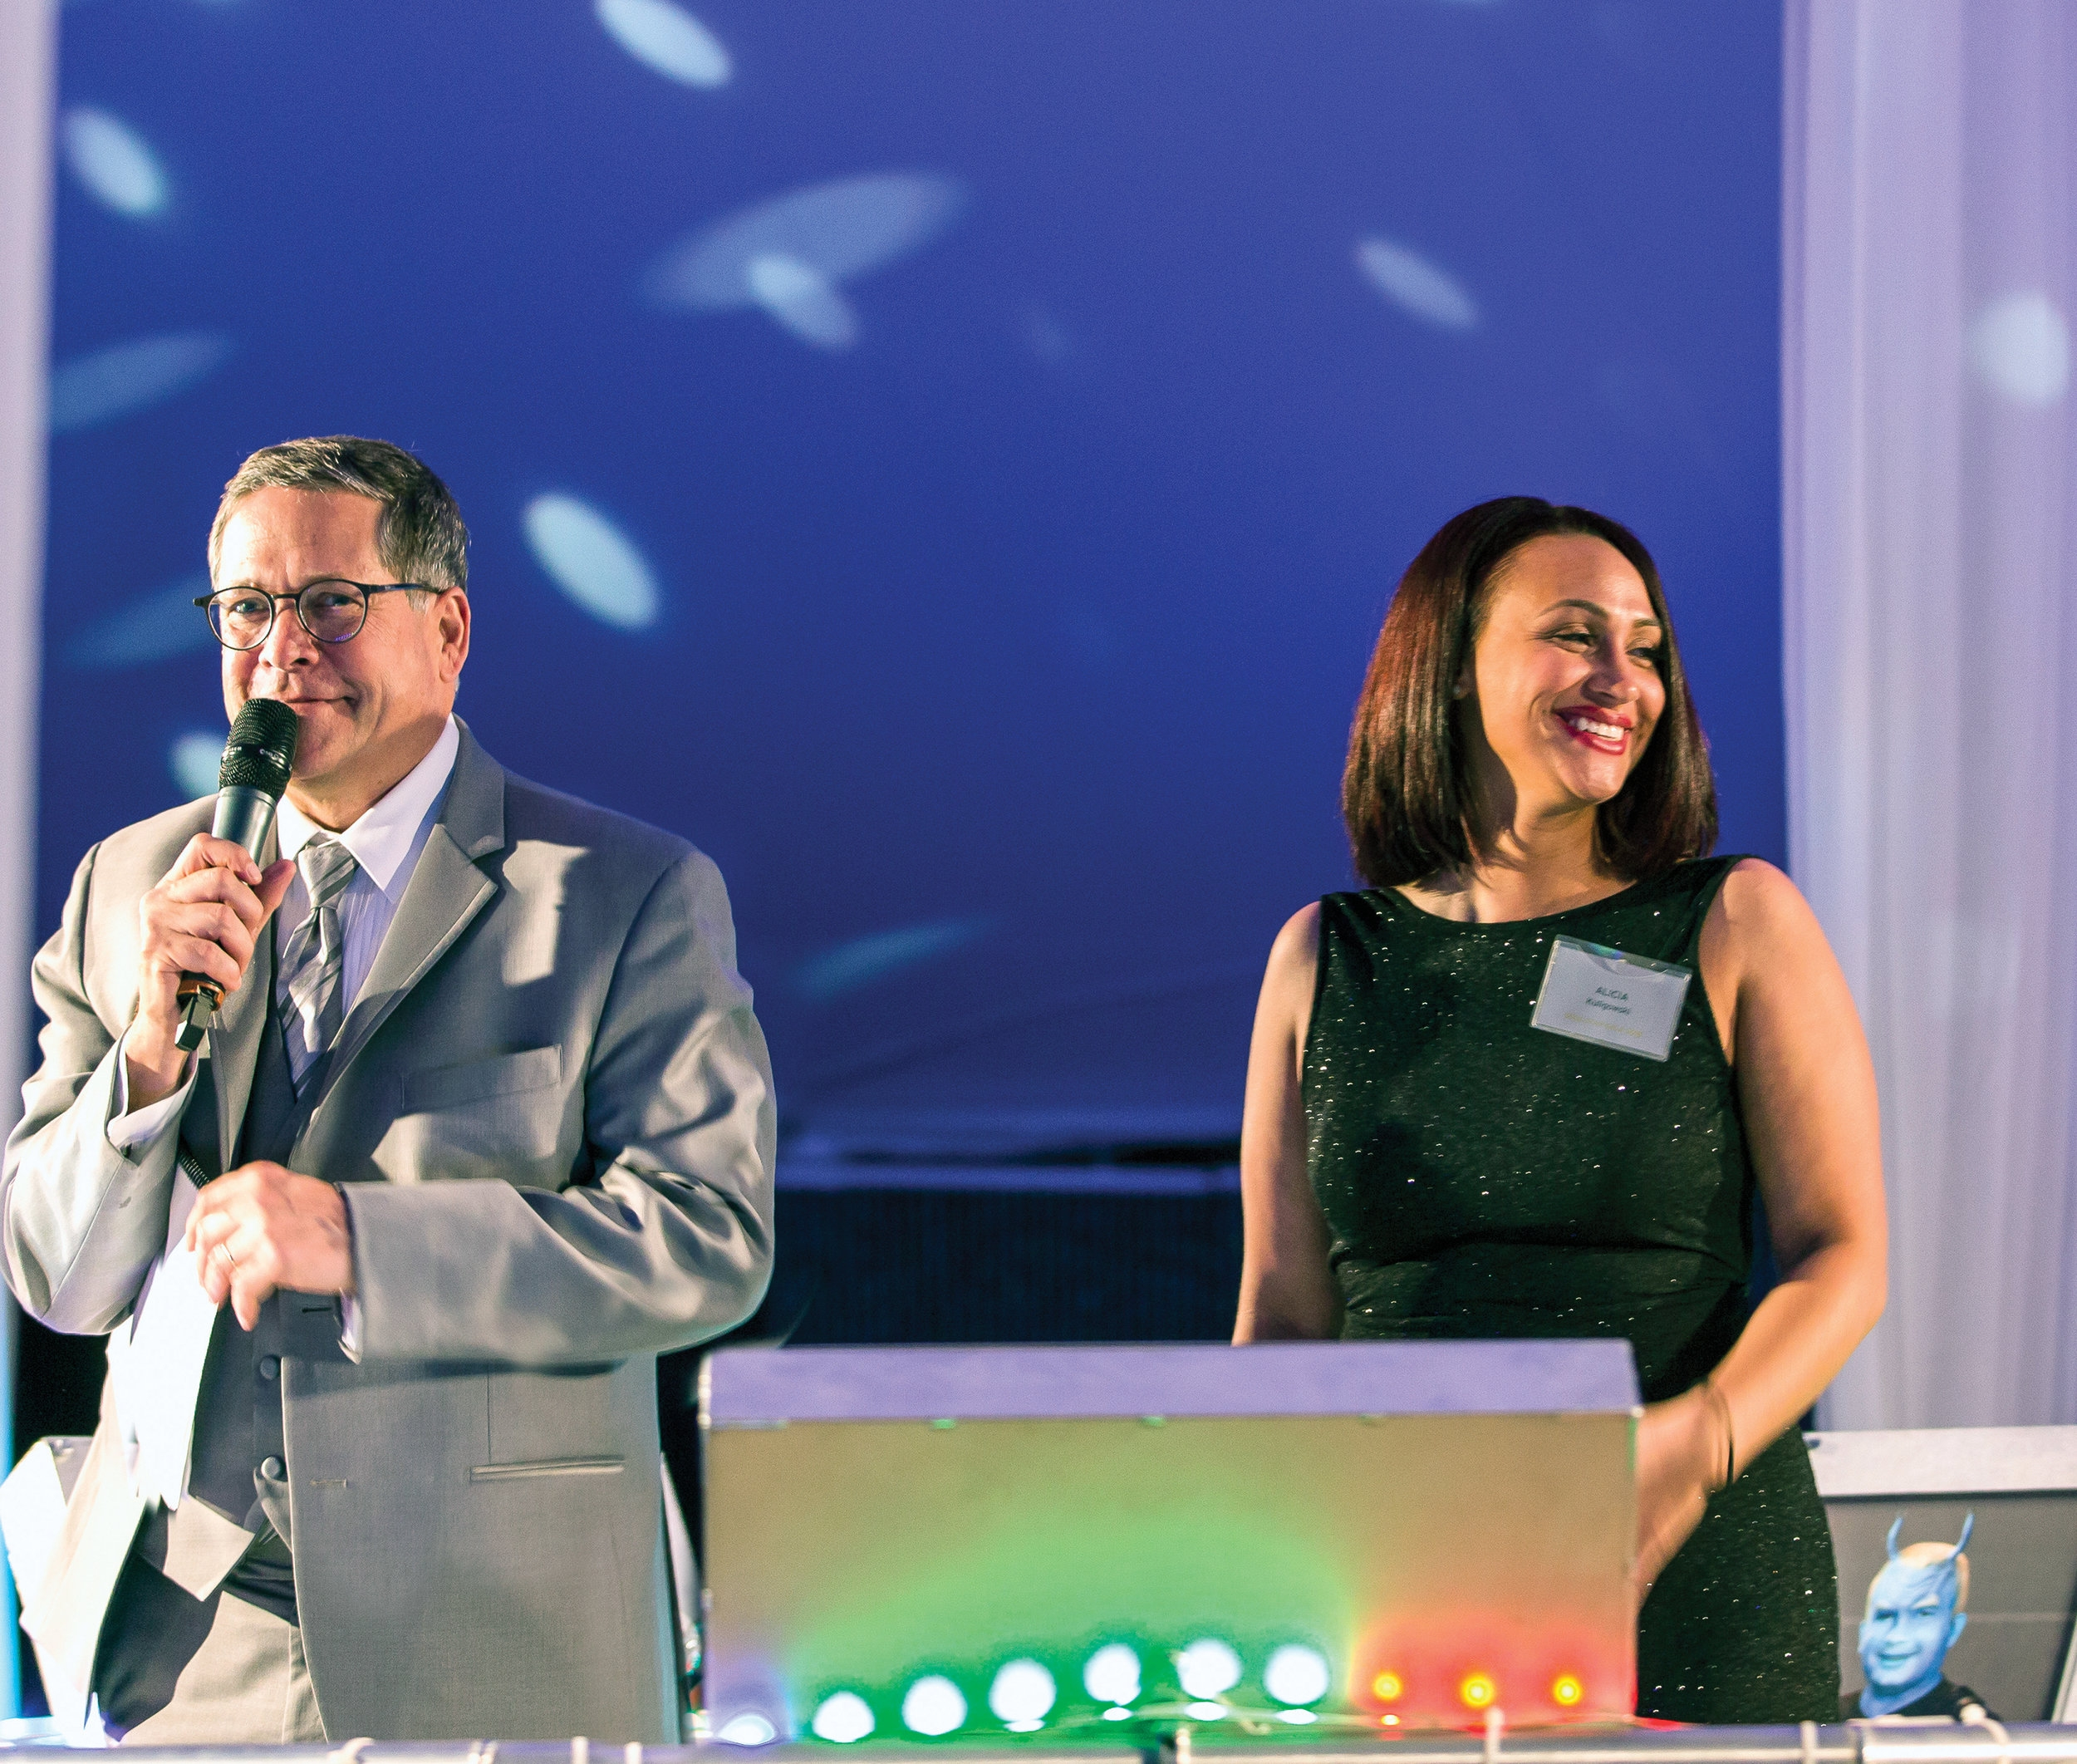 Celebrity auctioneer Doug Emblidge was joined by MCC Foundation scholarship recipient Alicia Kuligowski, Class of 2019, for an inspiring scholarship call.